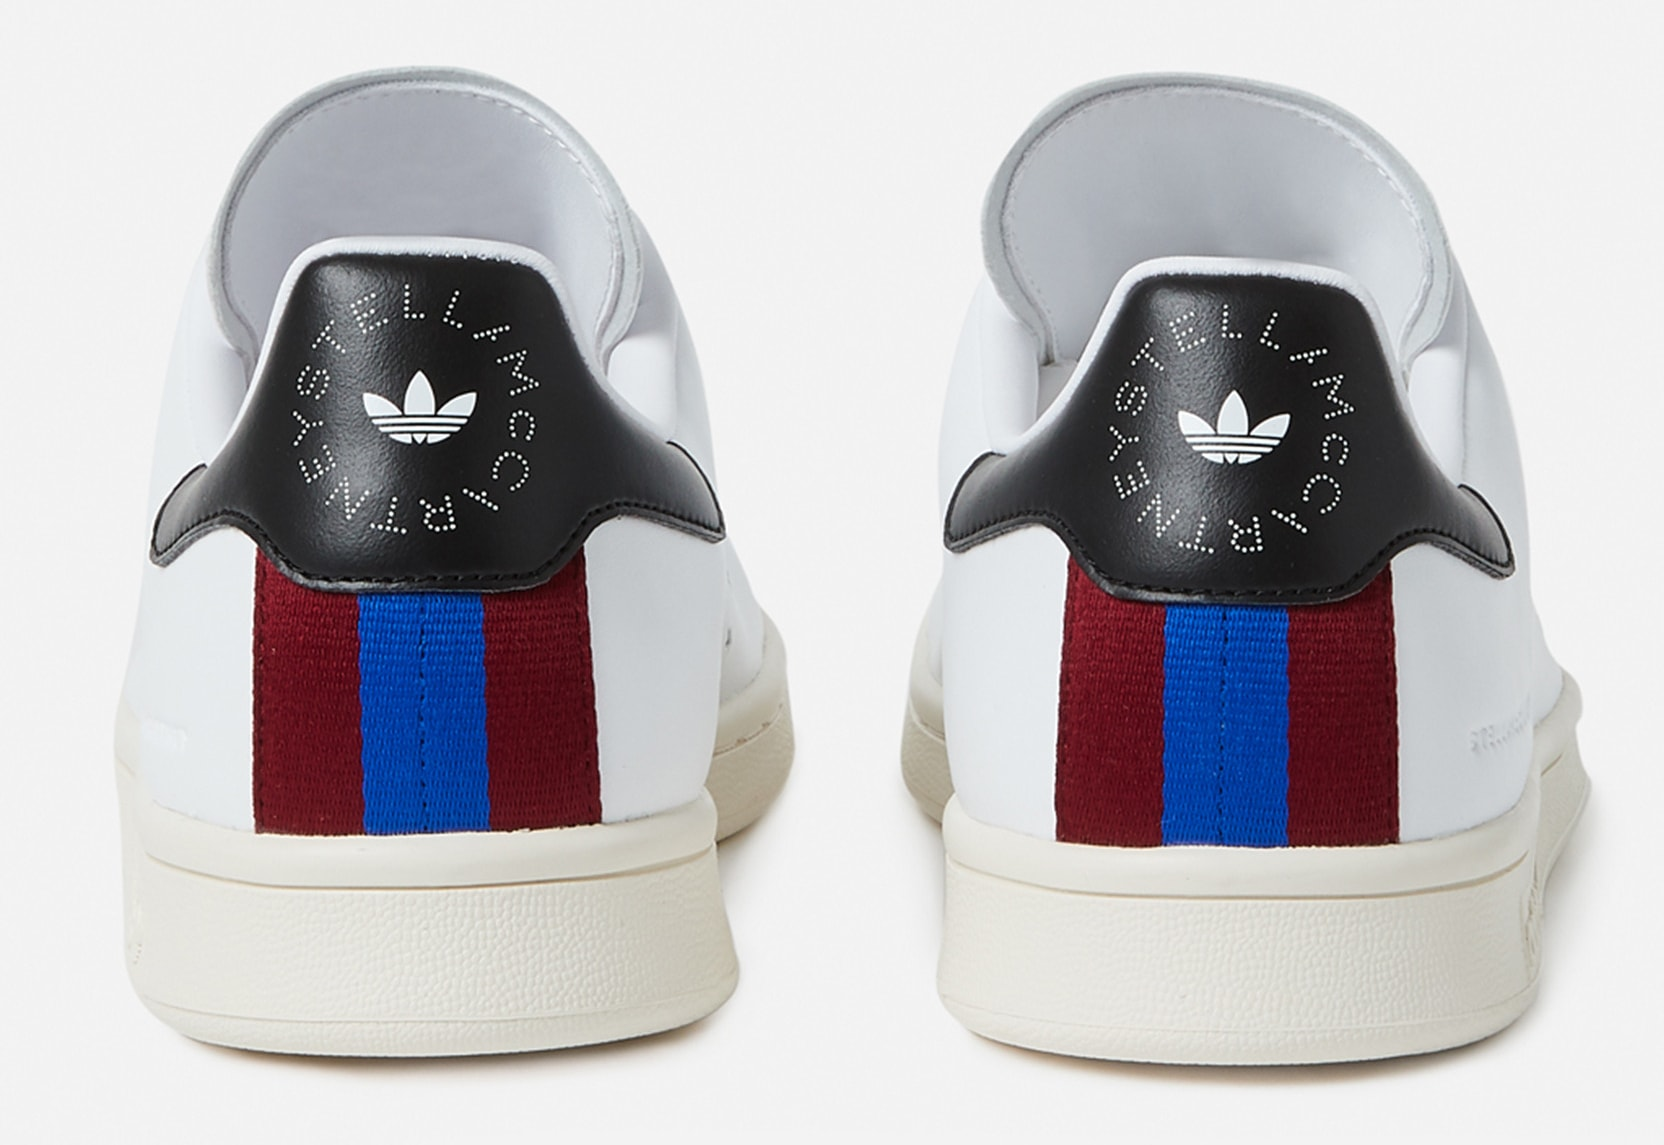 Stella McCartney x Adidas Stan Smith (Heel)